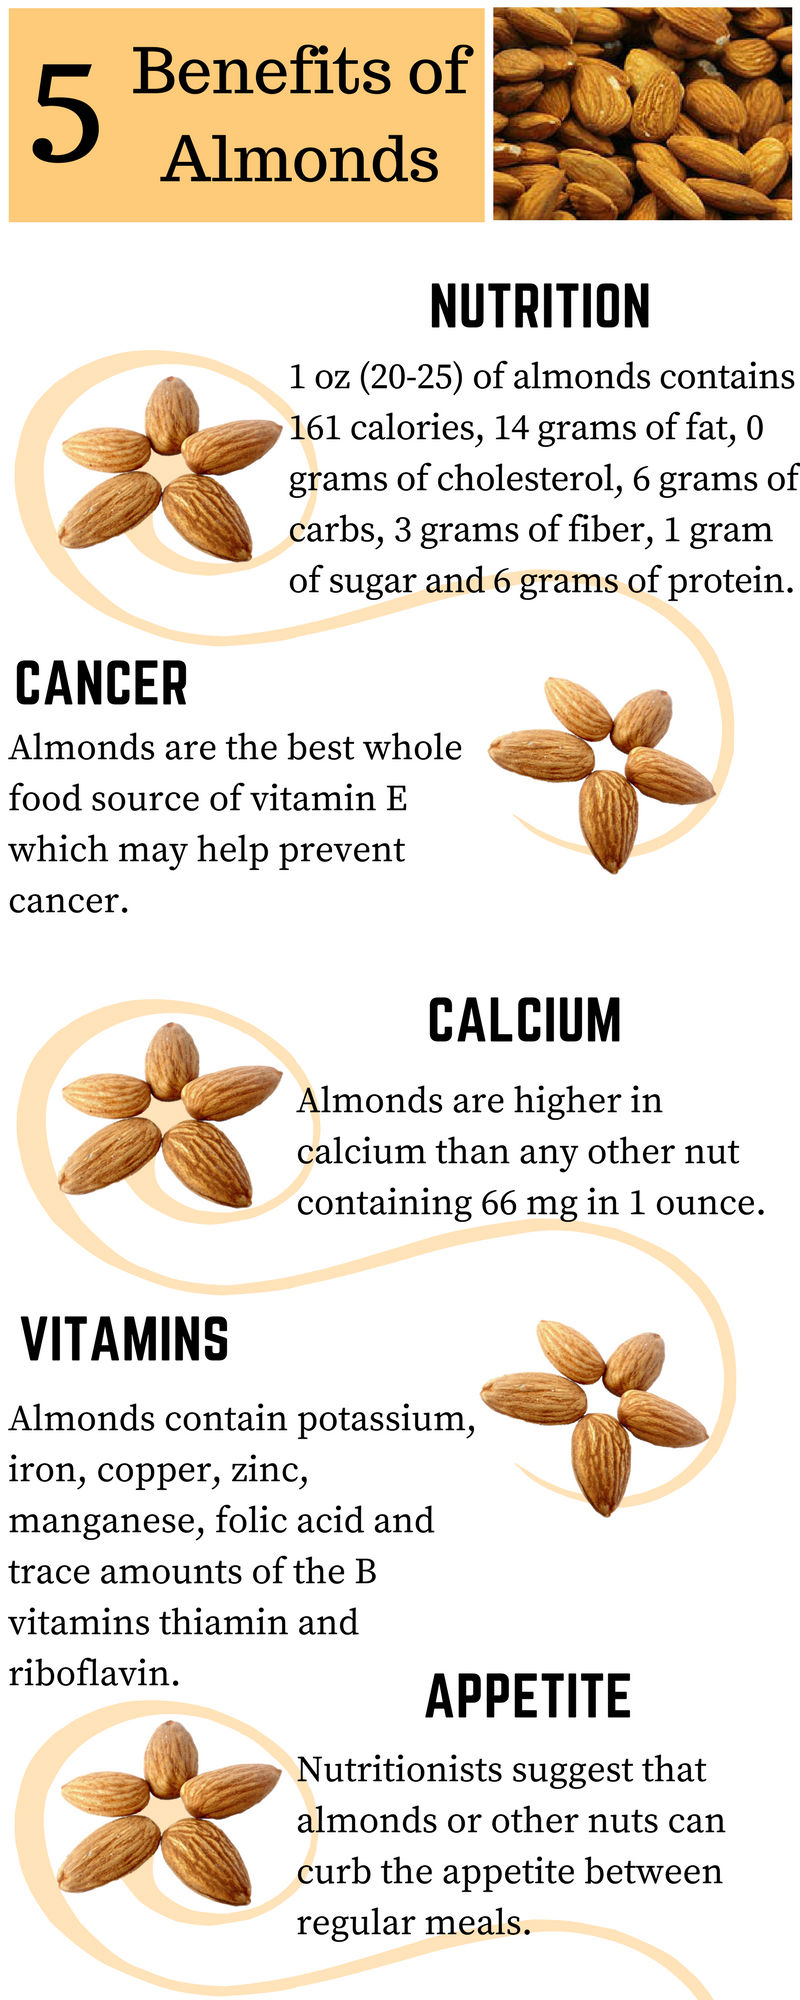 5 Benefits of Almonds